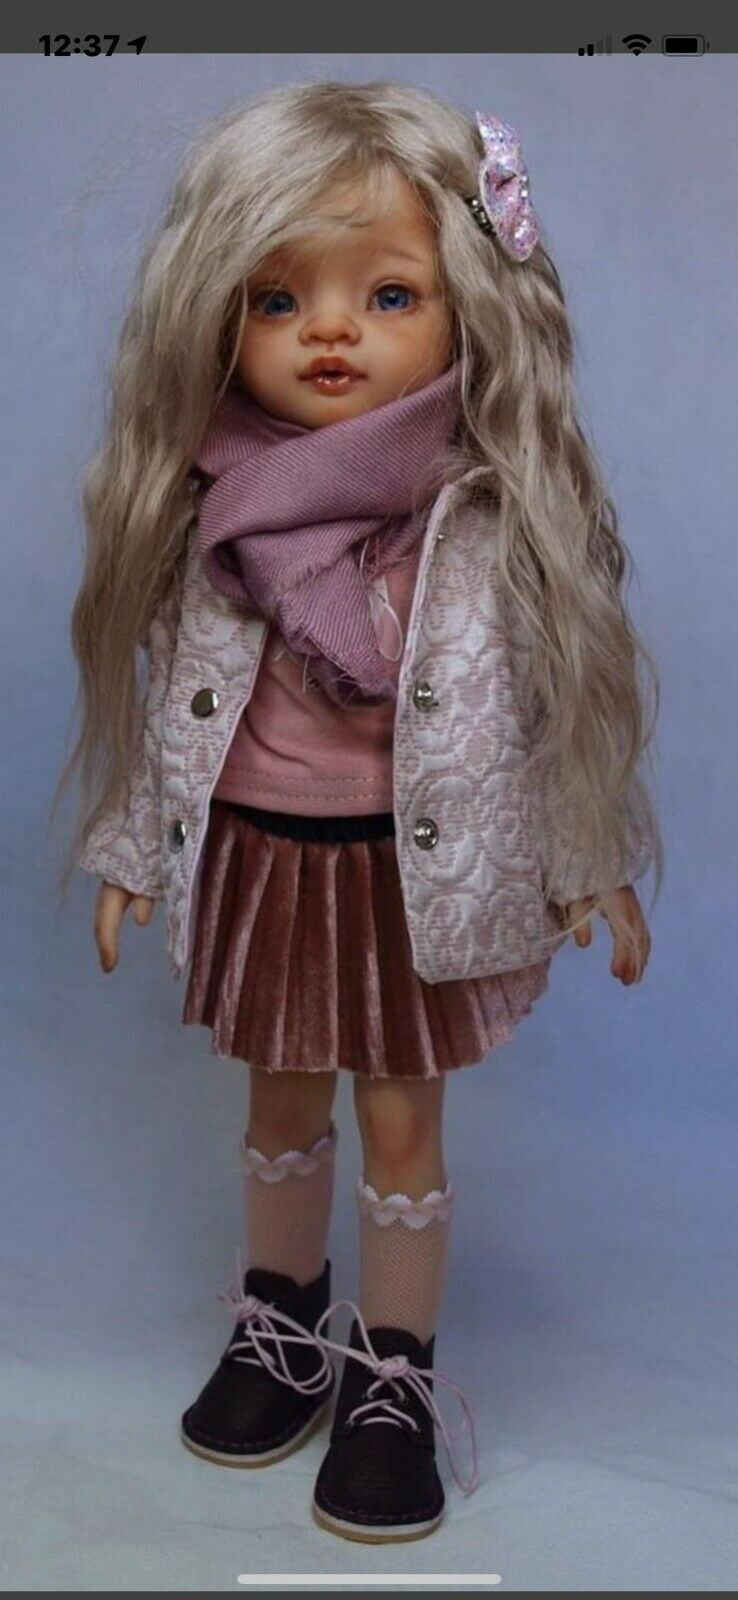 Doll Clothing Set Outfit, Little Darlings, Paola Reina, Handmade Coat  - $19.99